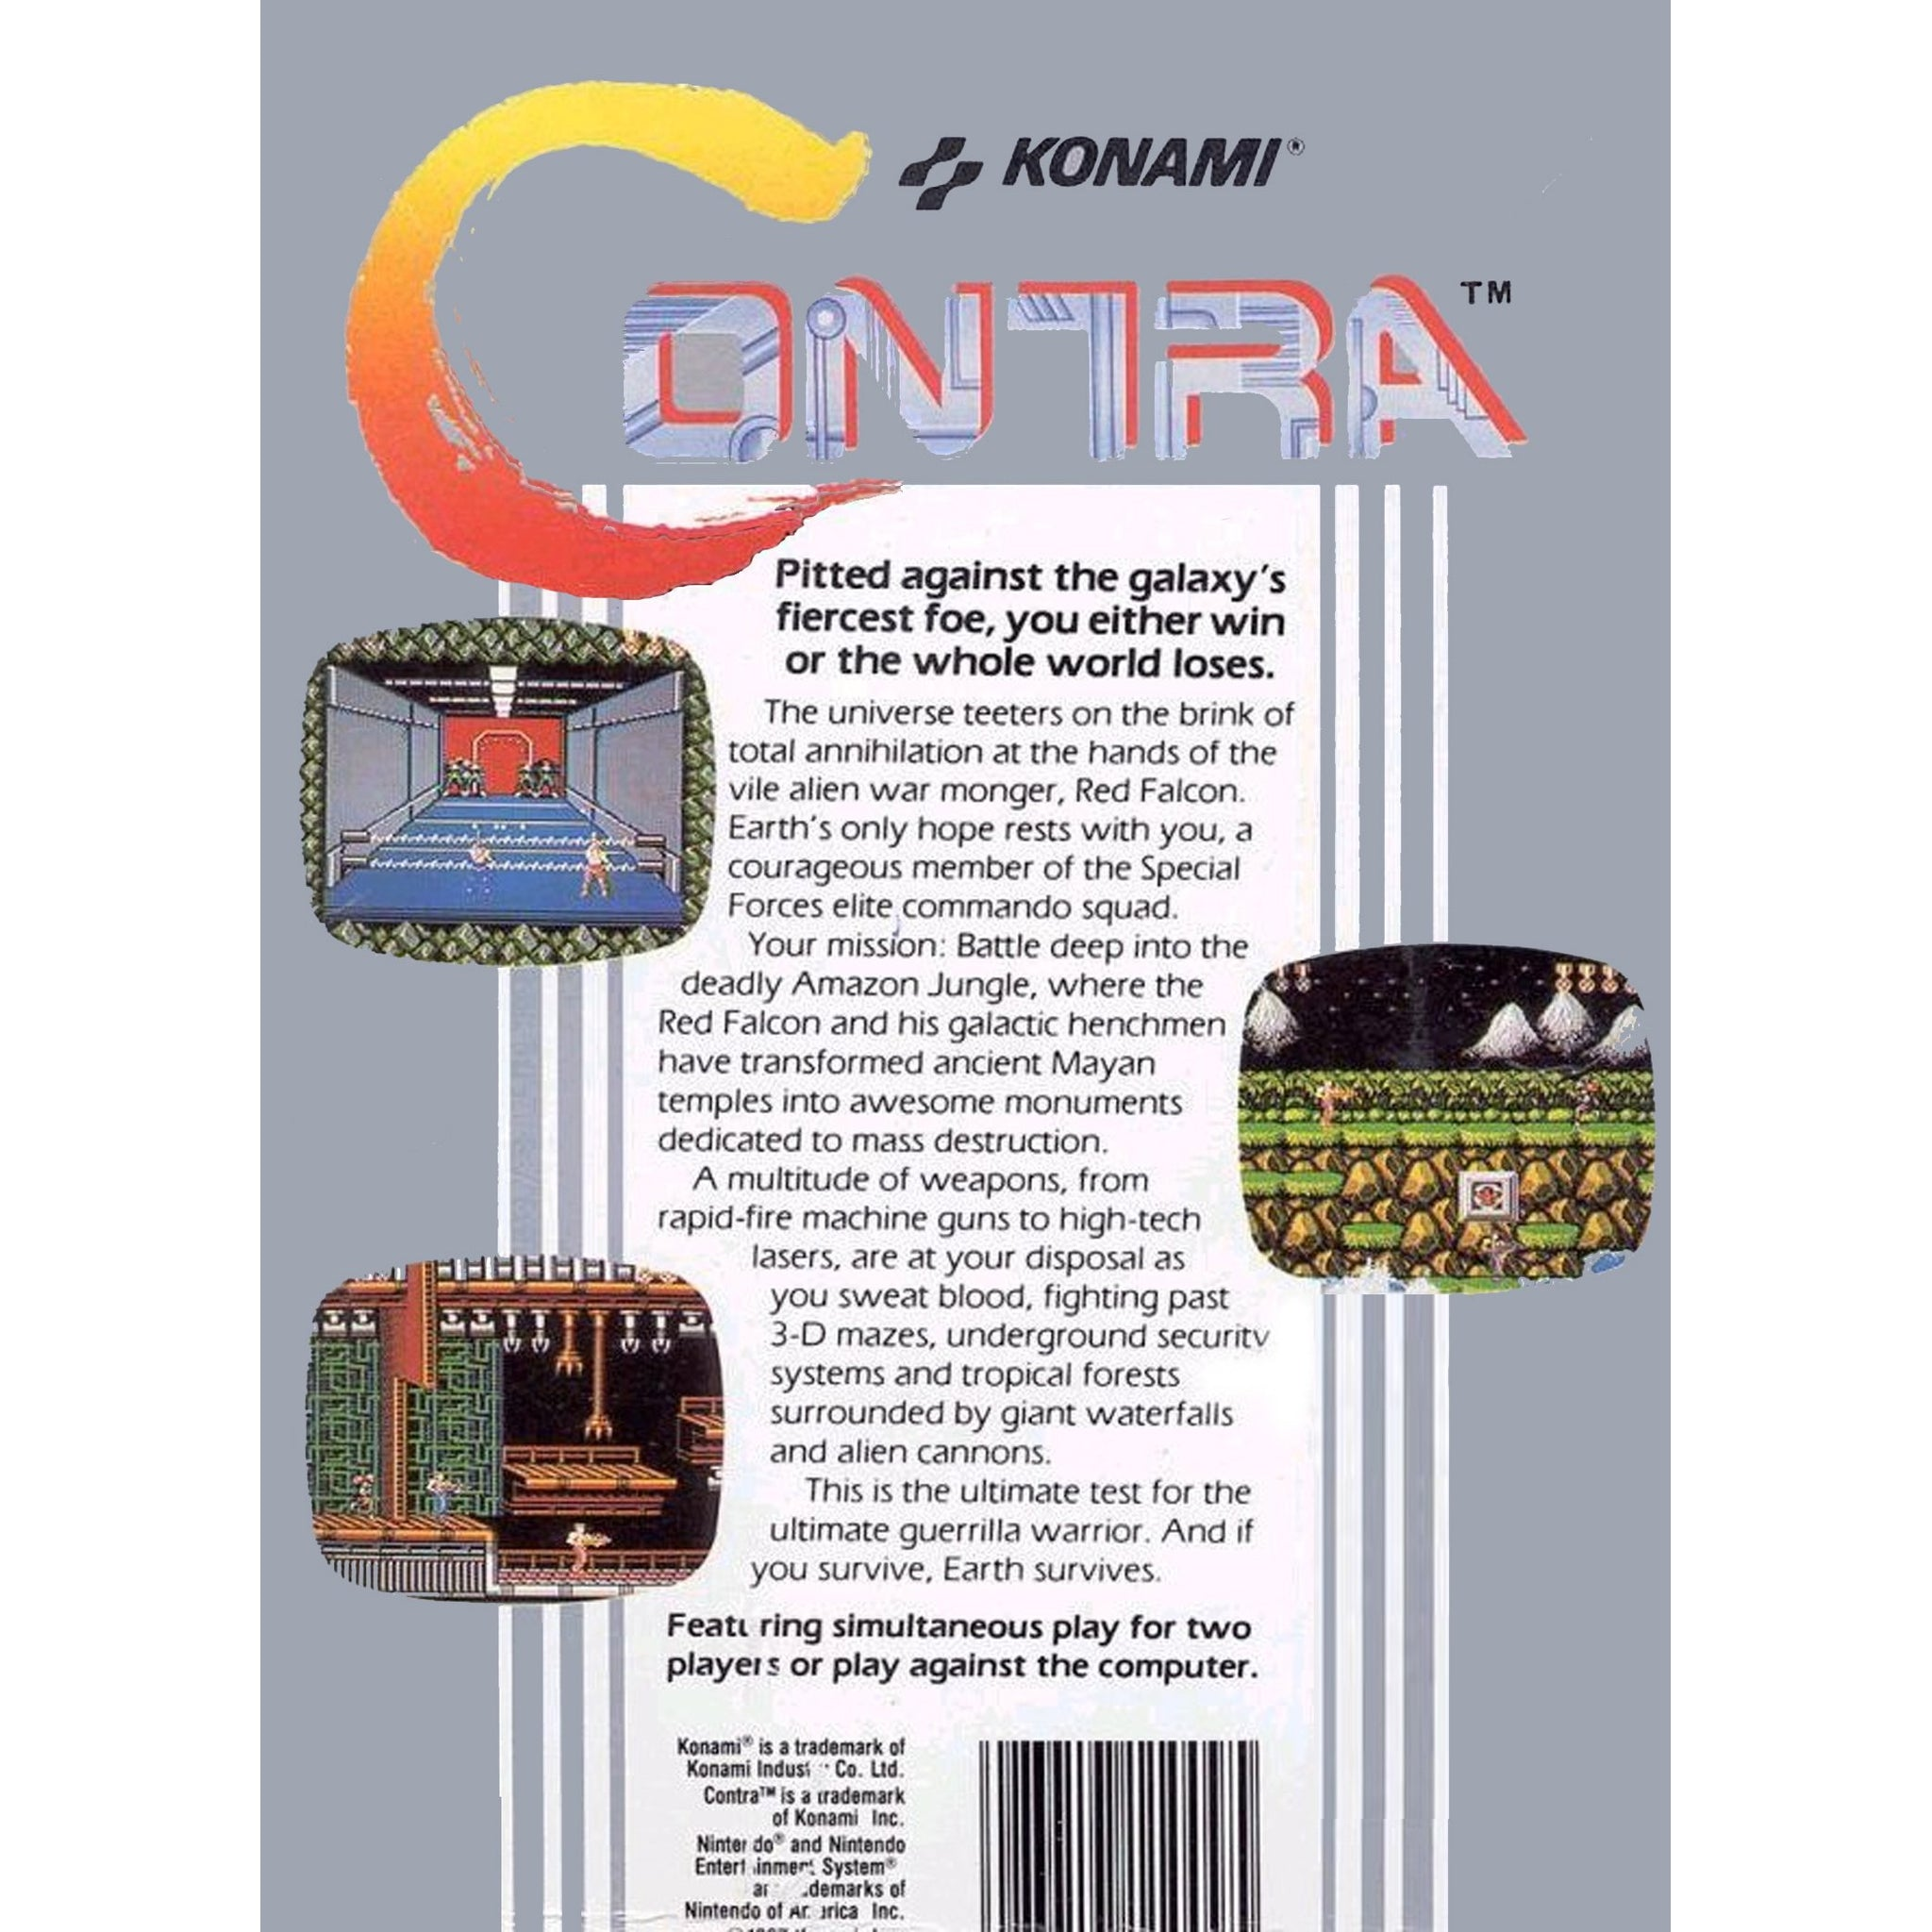 Contra - Authentic NES Game Cartridge - YourGamingShop.com - Buy, Sell, Trade Video Games Online. 120 Day Warranty. Satisfaction Guaranteed.